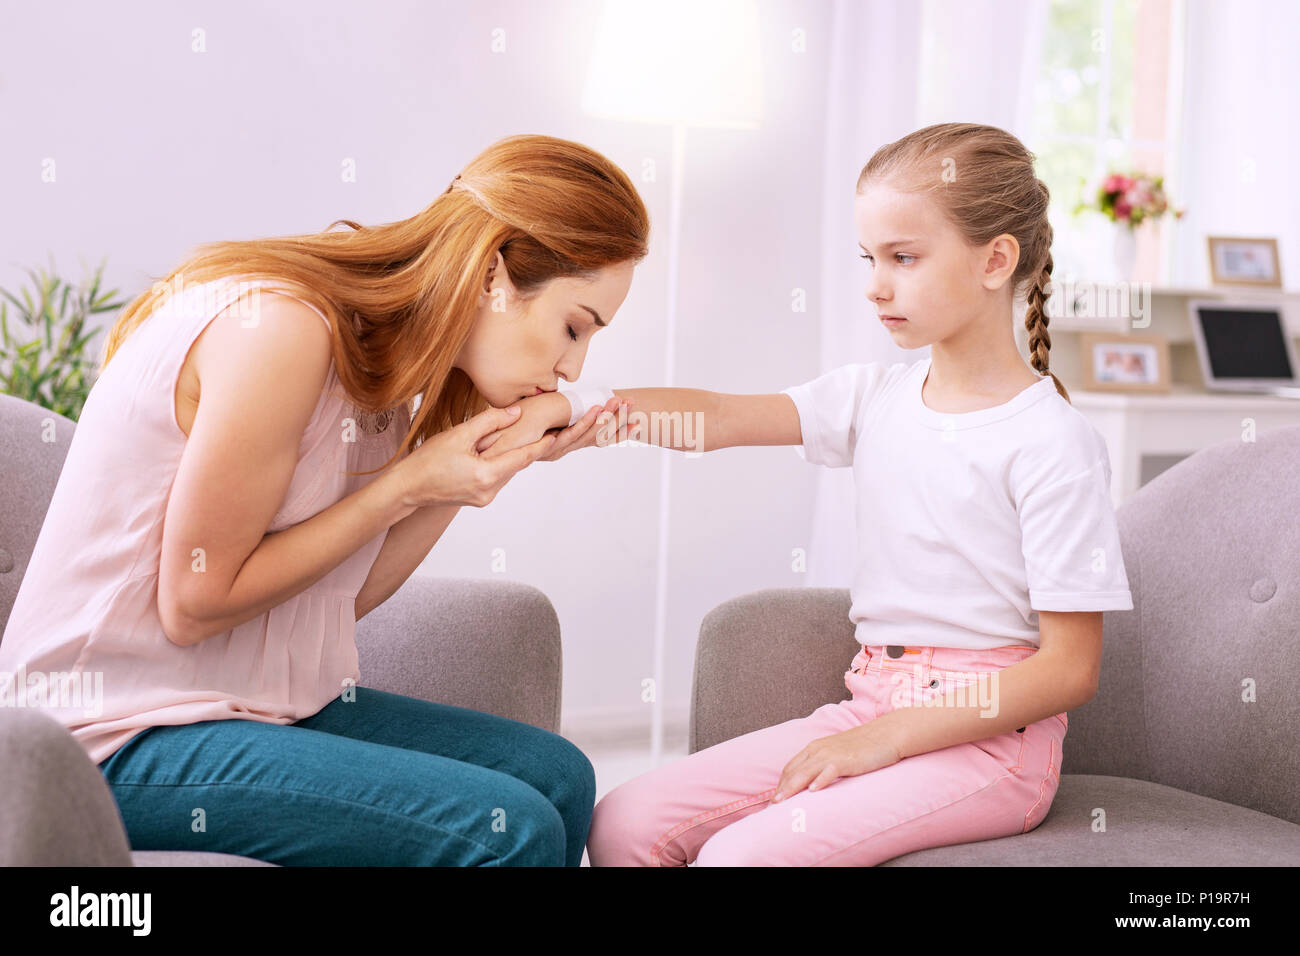 Pleasant anxious woman kissing her daughters hand - Stock Image